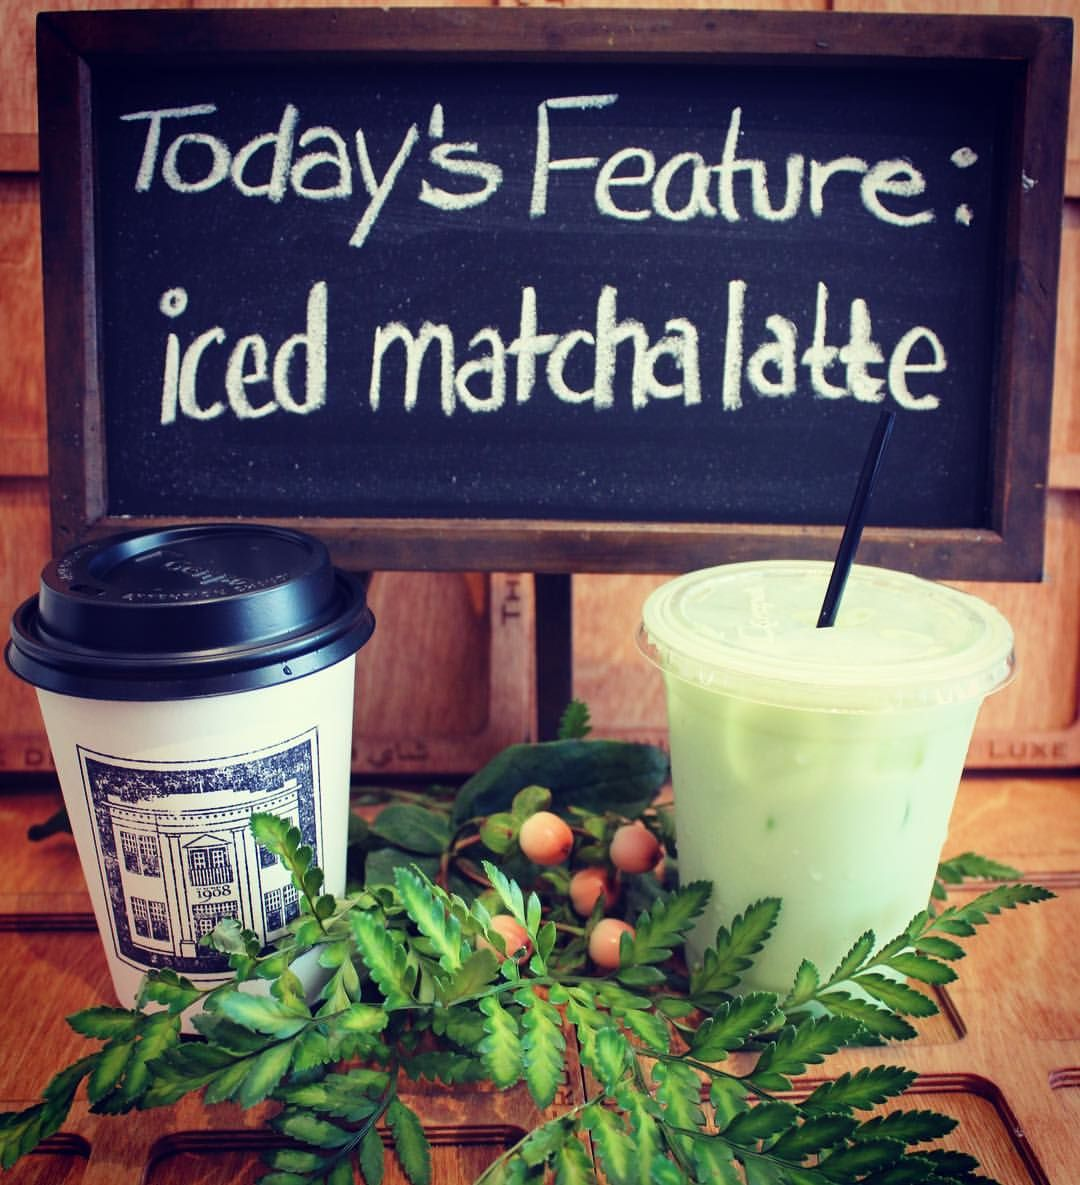 Try Your Iced Matcha Latte With Almond Milk... Some Might